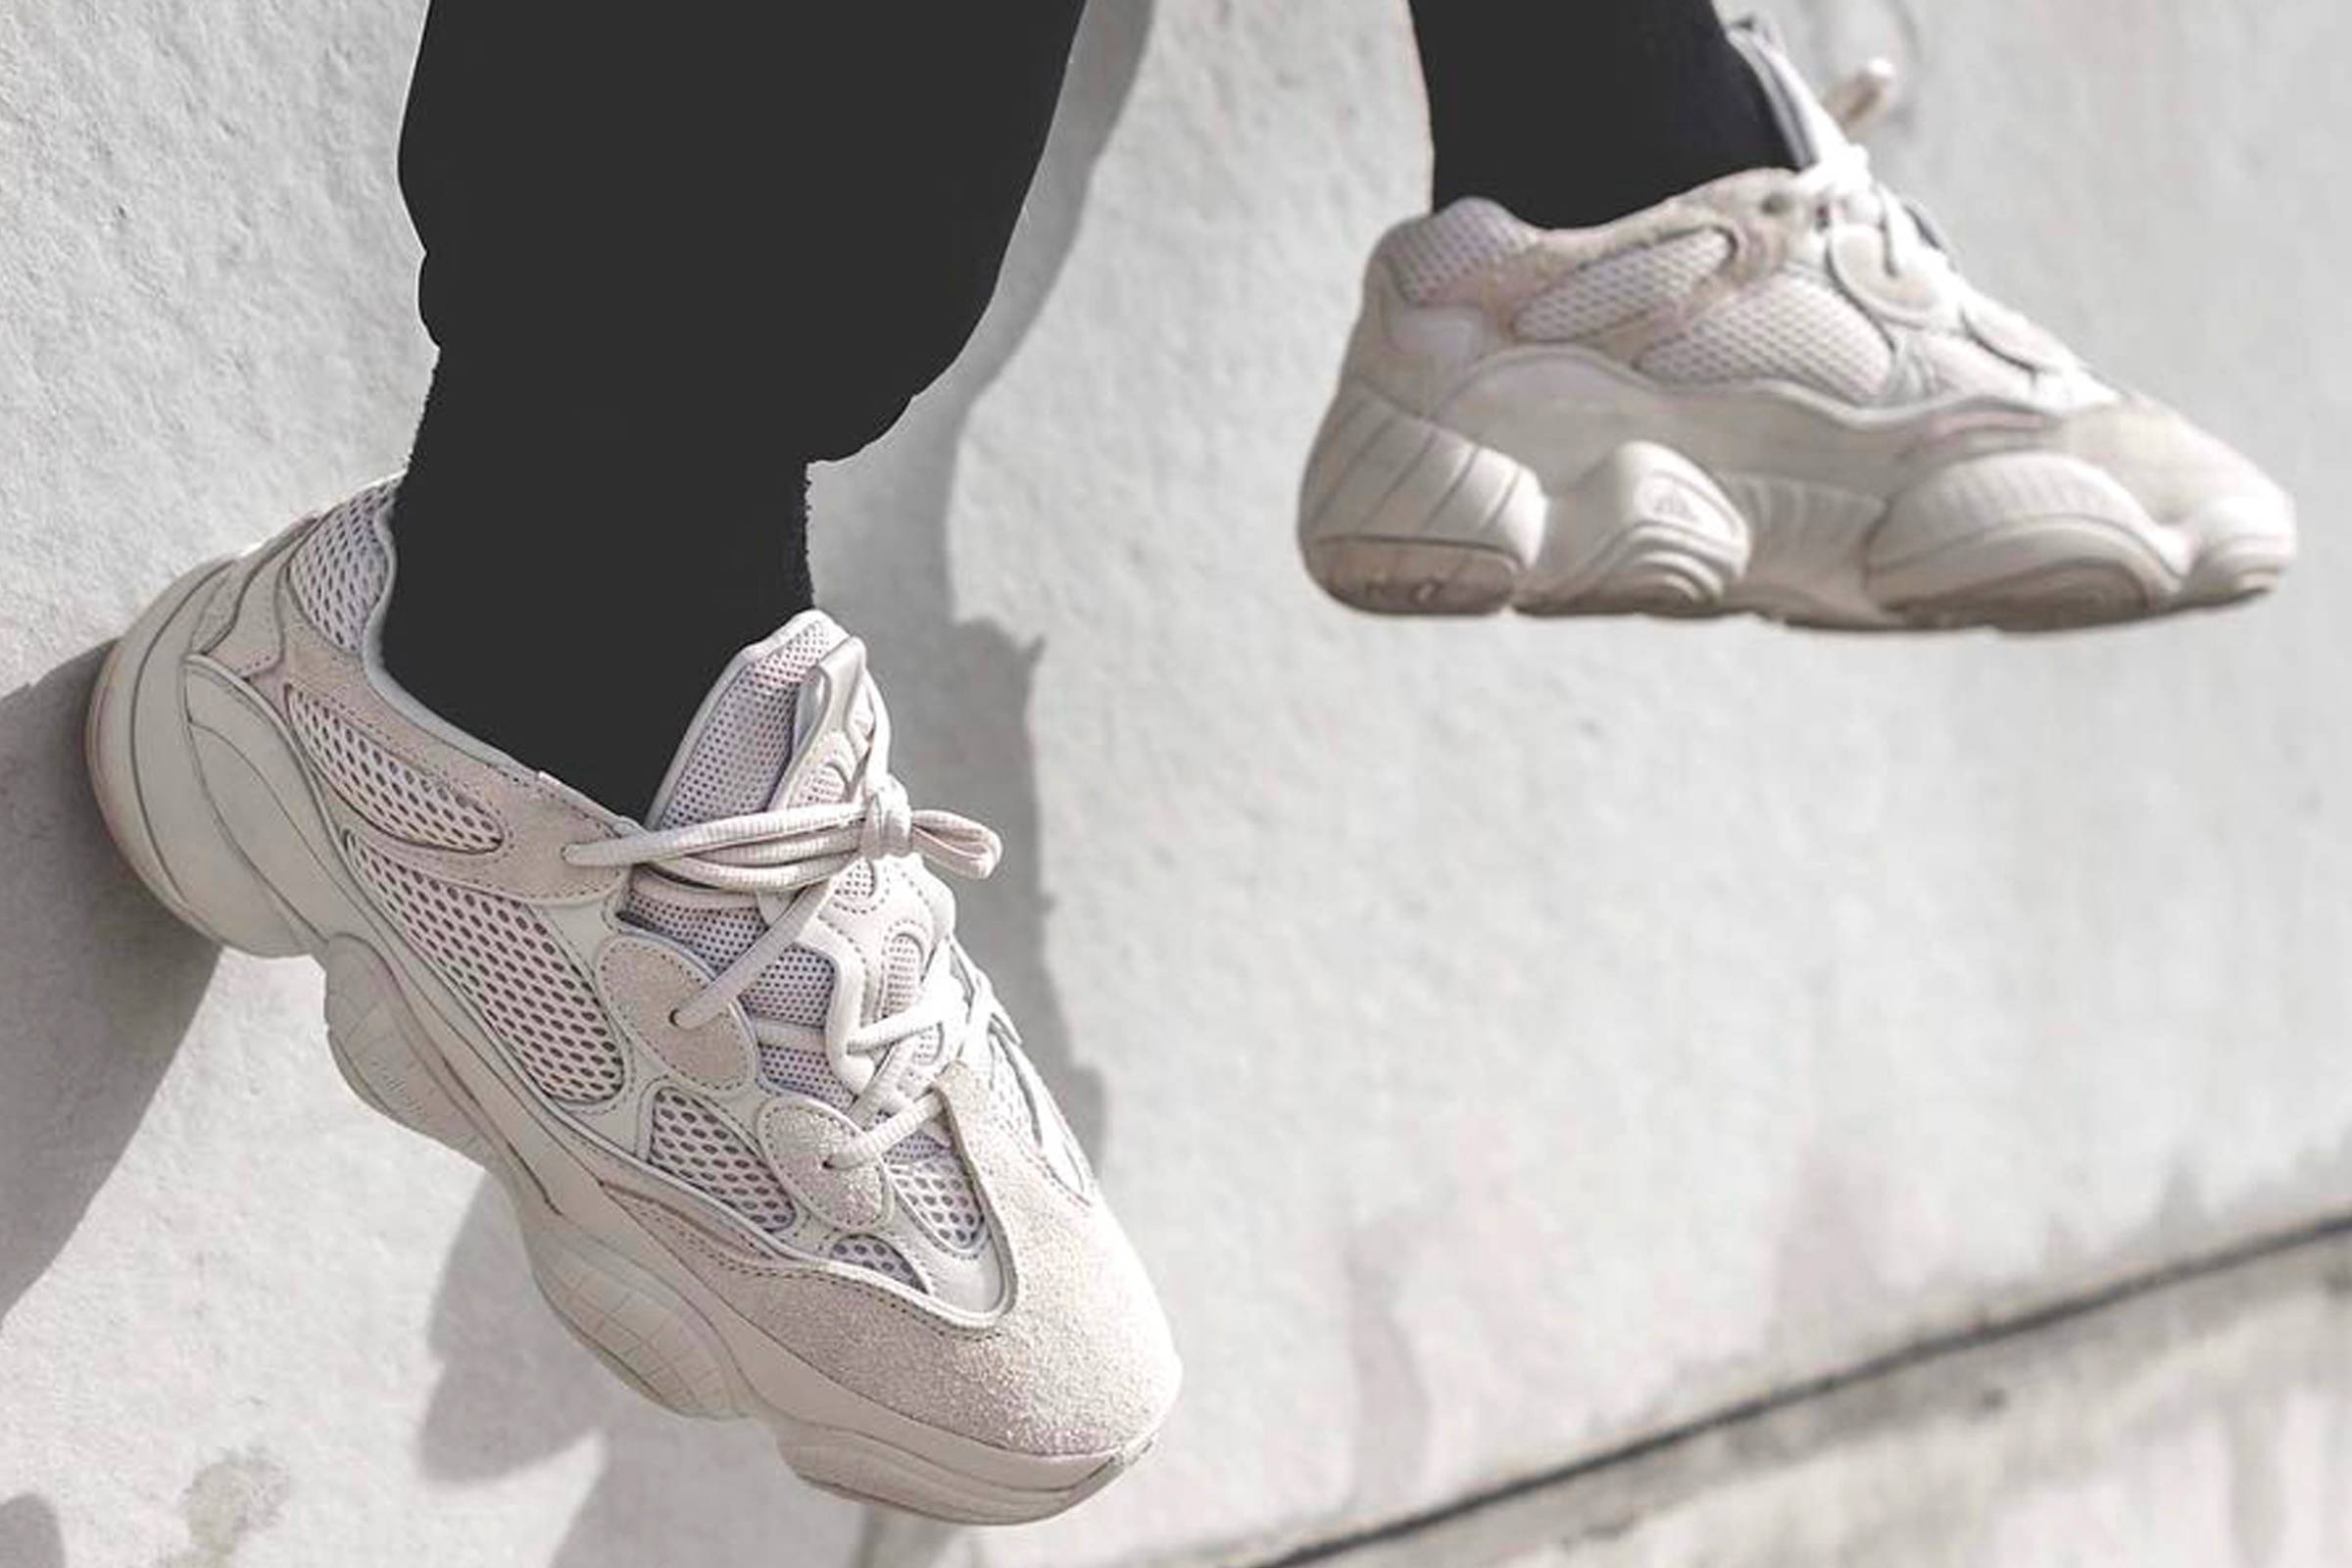 Is AdiPRENE Better than BOOST Yeezy 500 vs Yeezy 350 V2